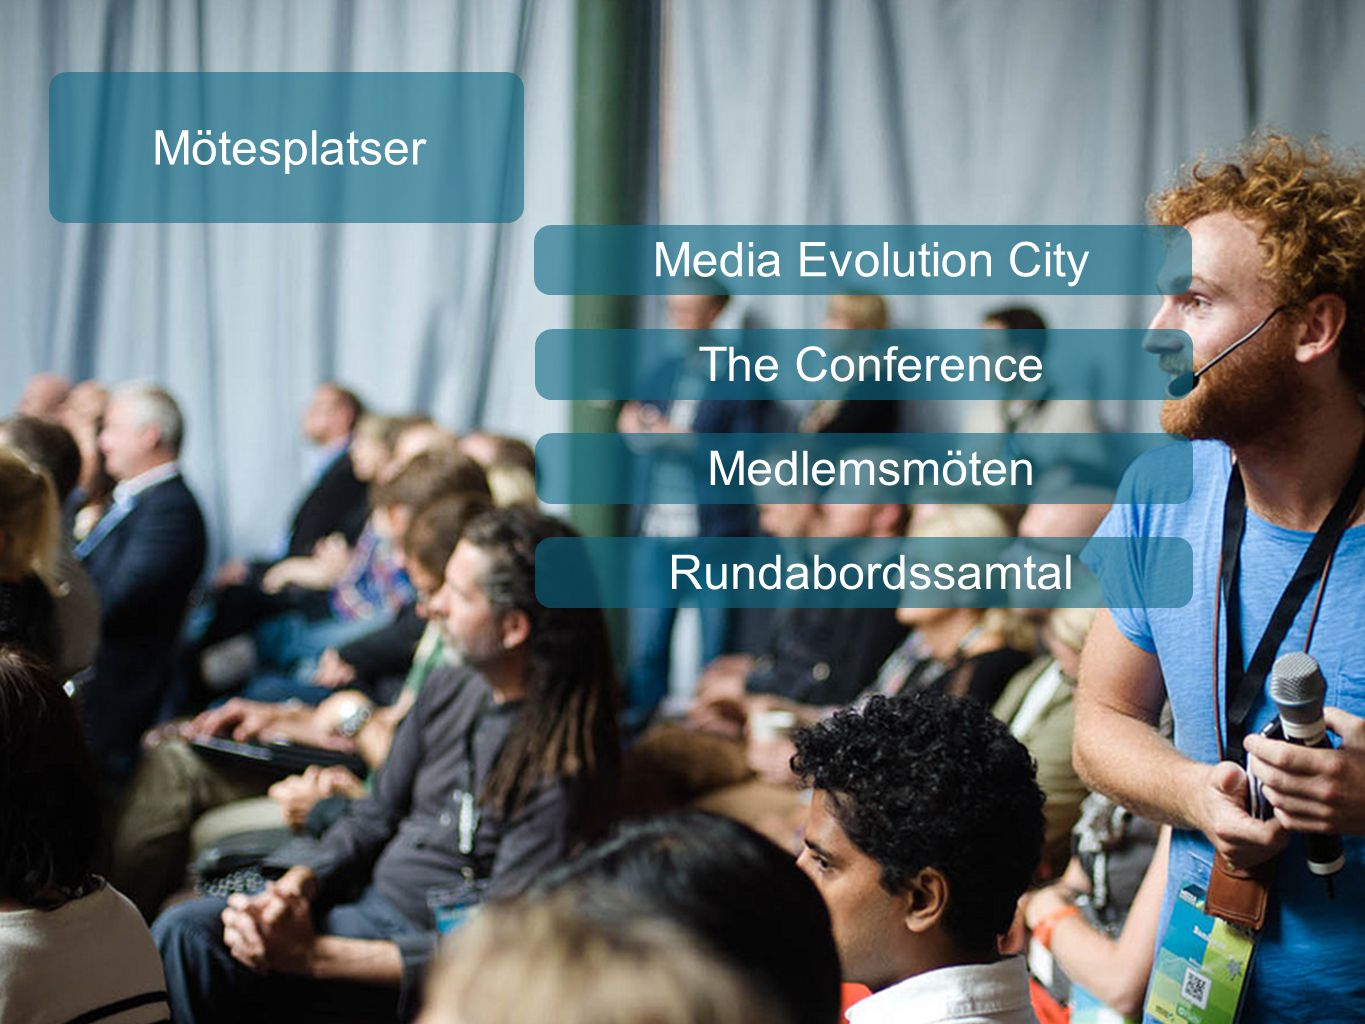 Mötesplatser Media Evolution City The Conference Medlemsmöten Rundabordssamtal